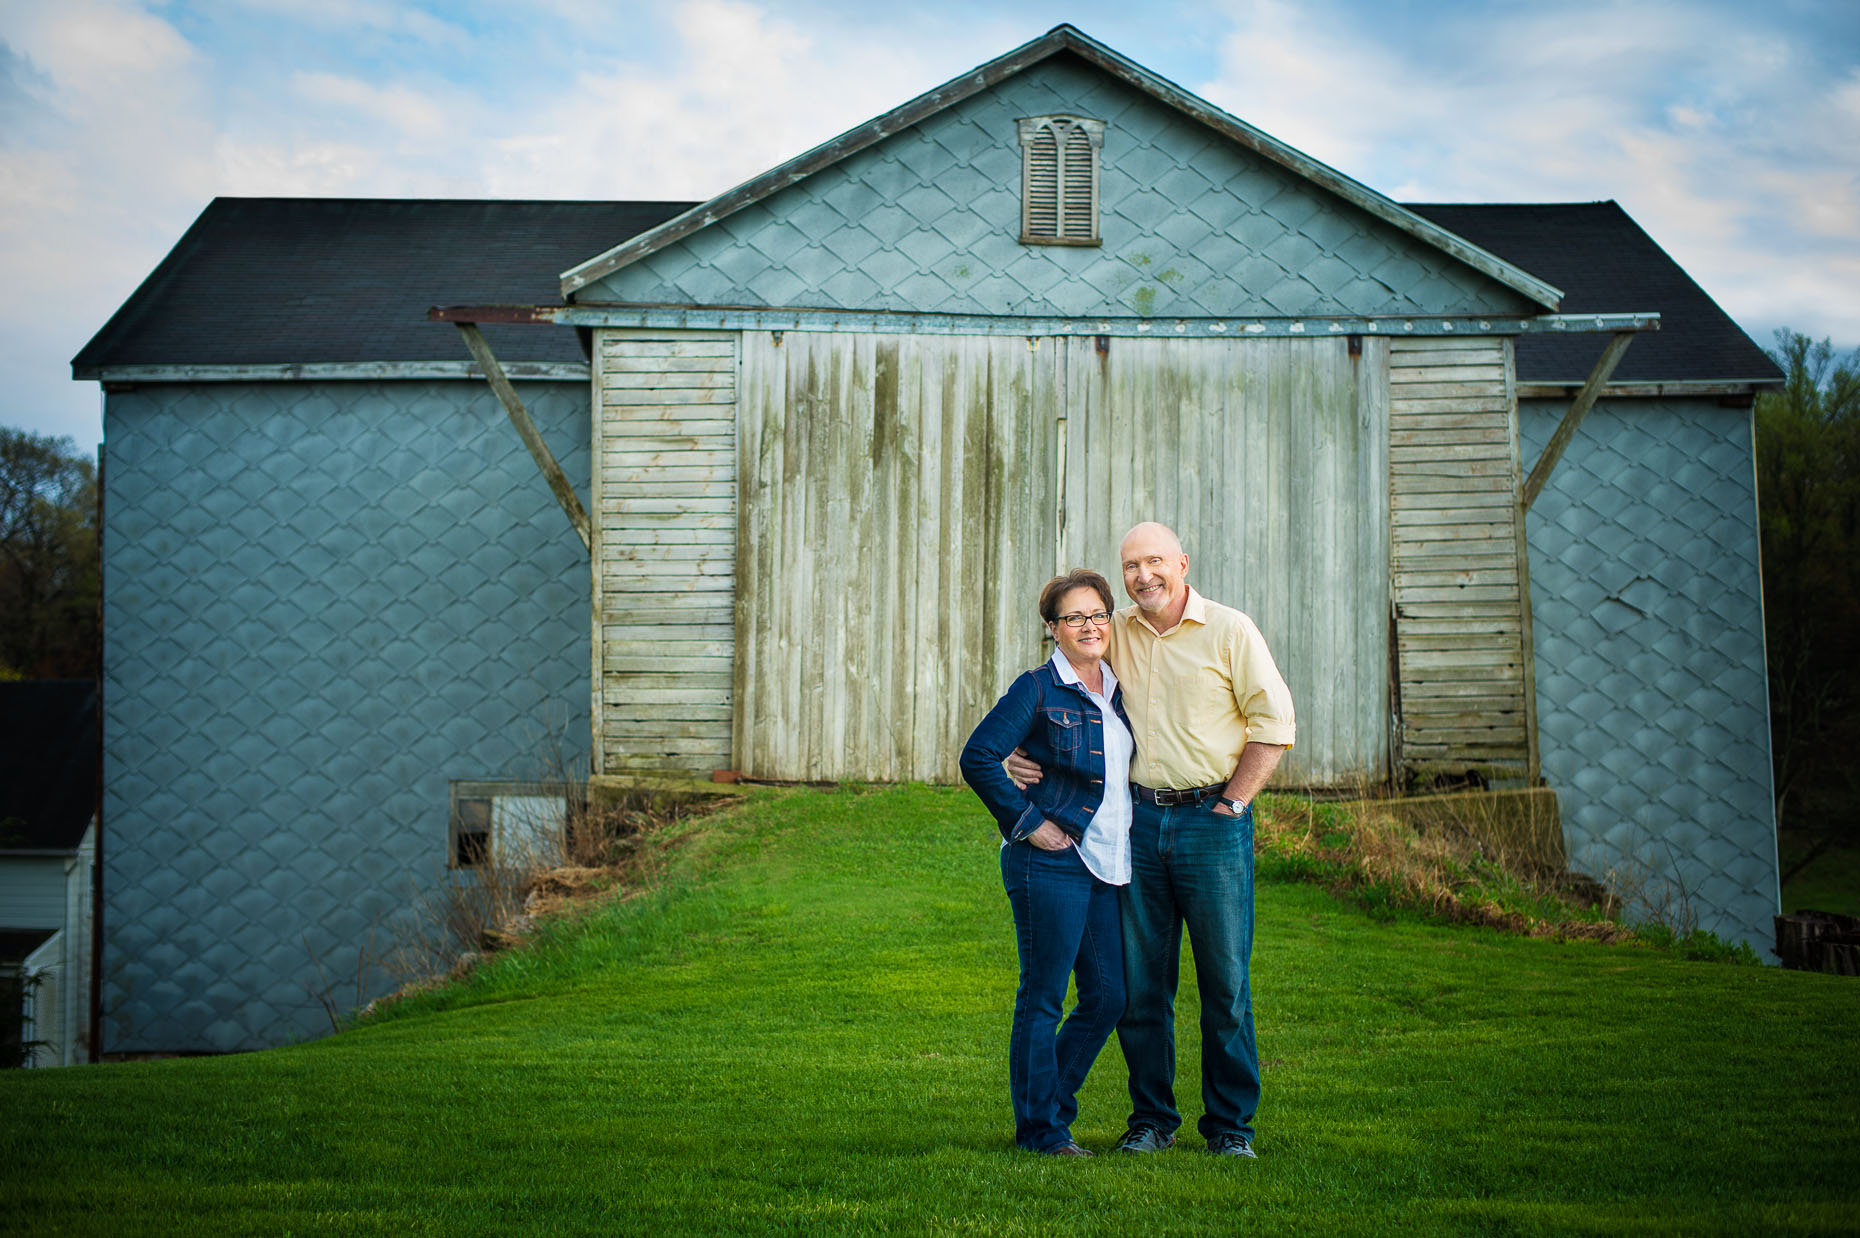 commercial-portraits-couple-barn-house